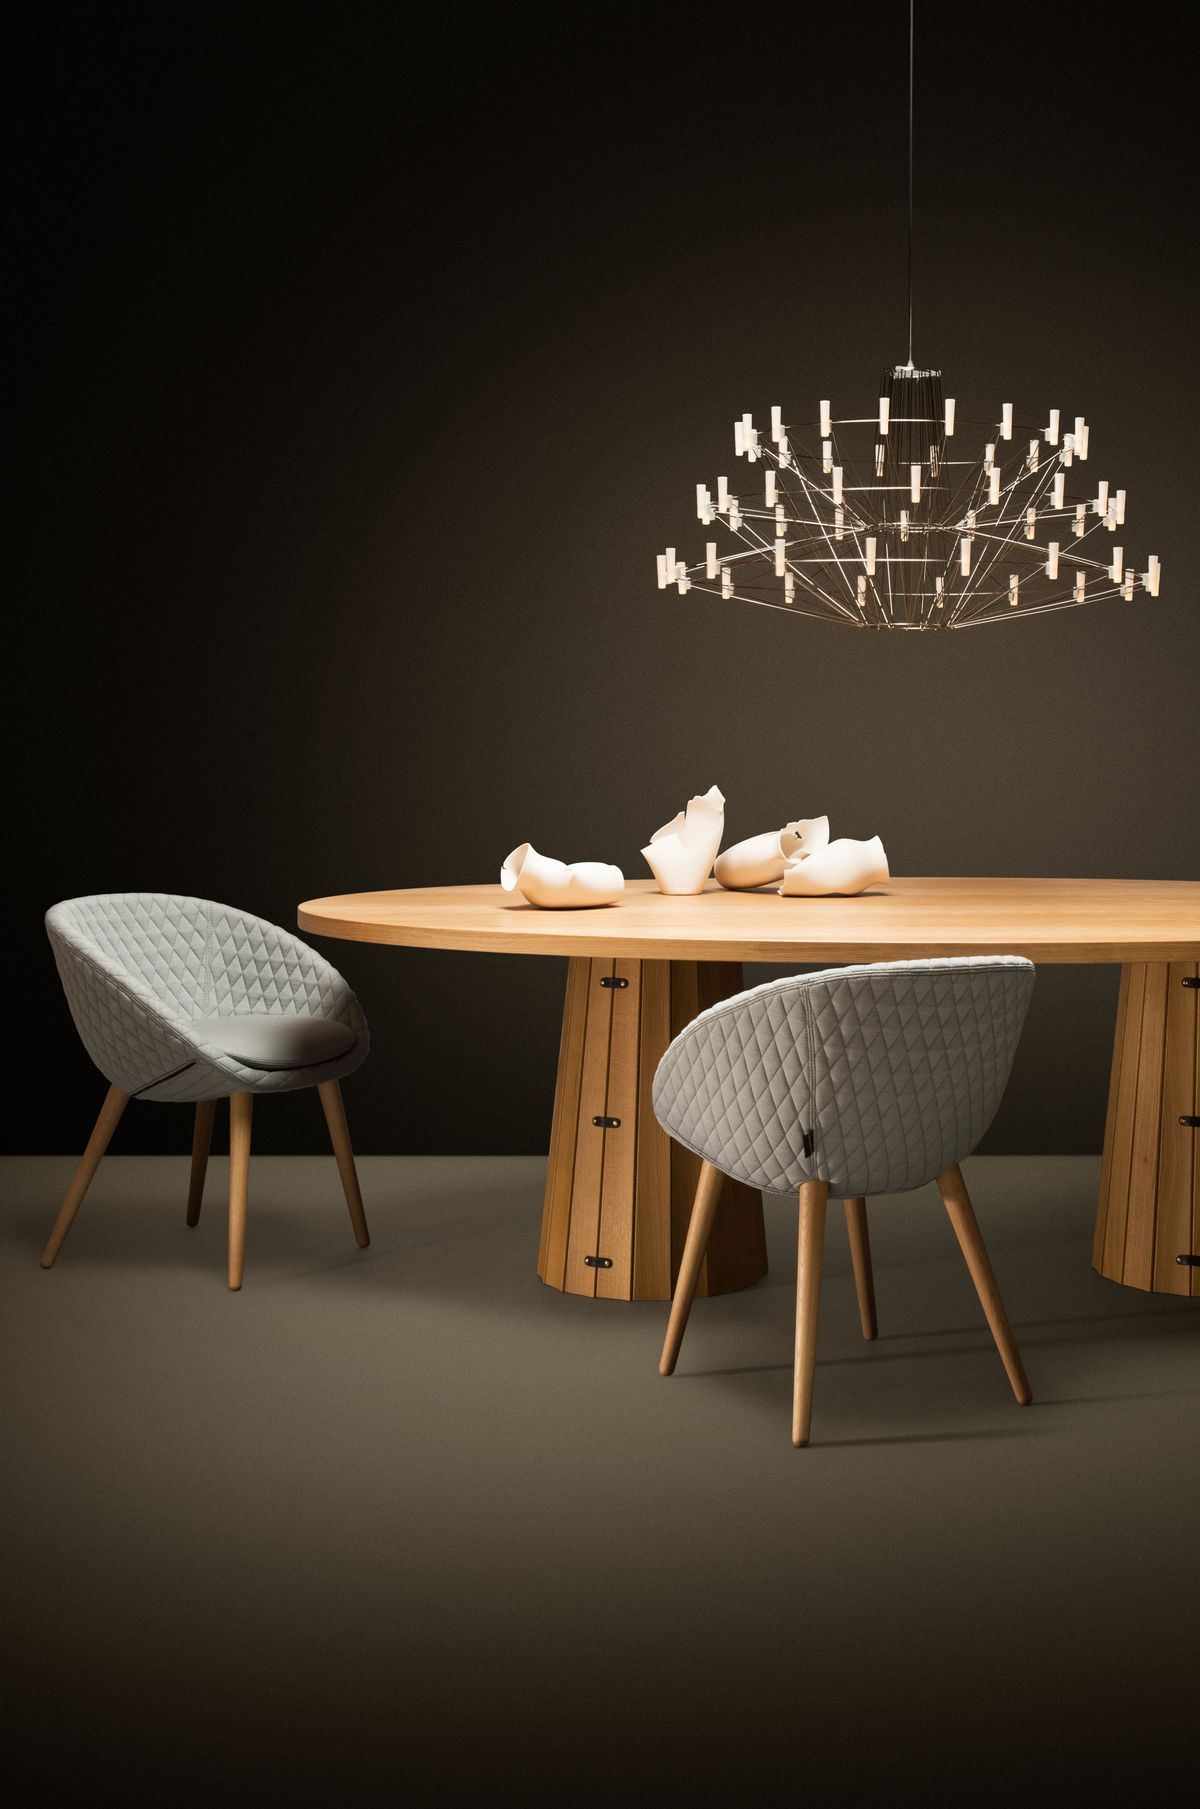 Poetic composition Container Table, Love Dining Chair and Coppelia Suspended light